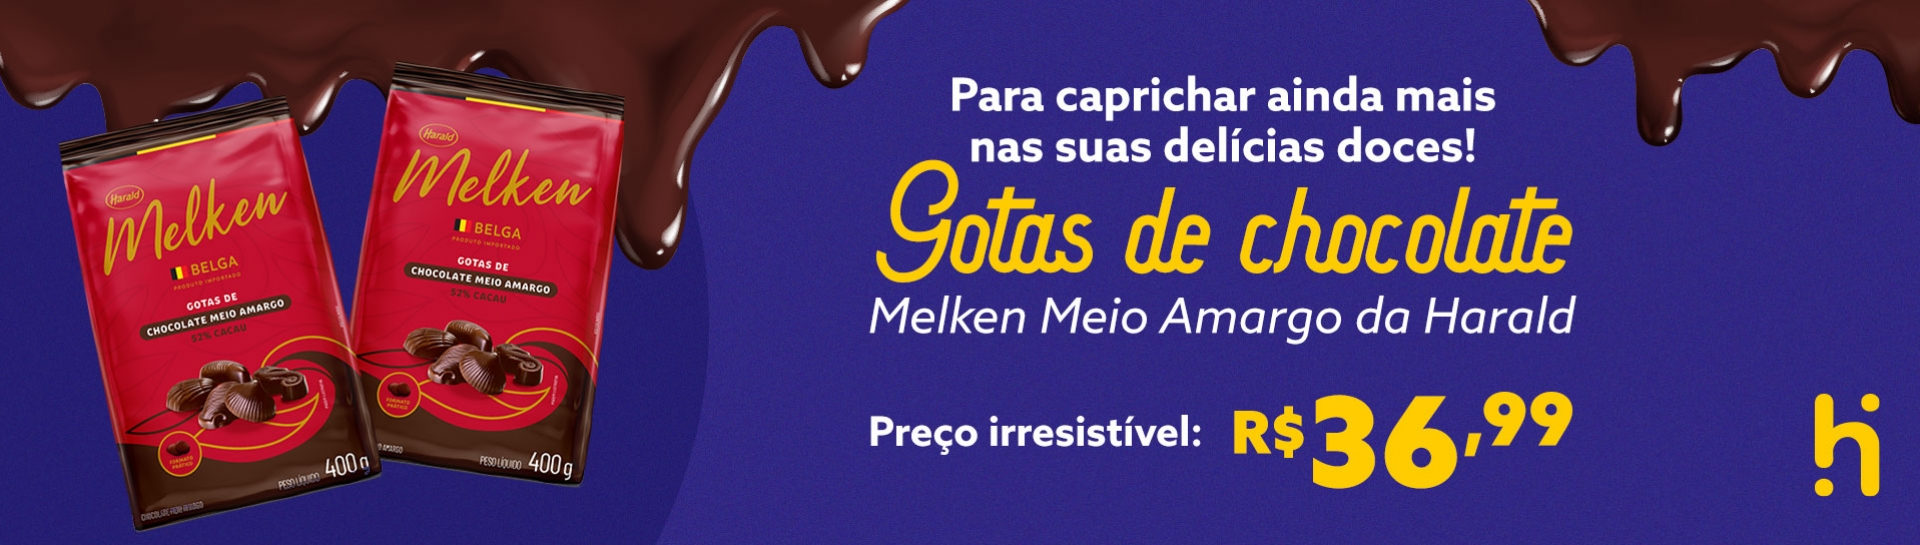 Gotas de Chocolate Melken (Desktop)